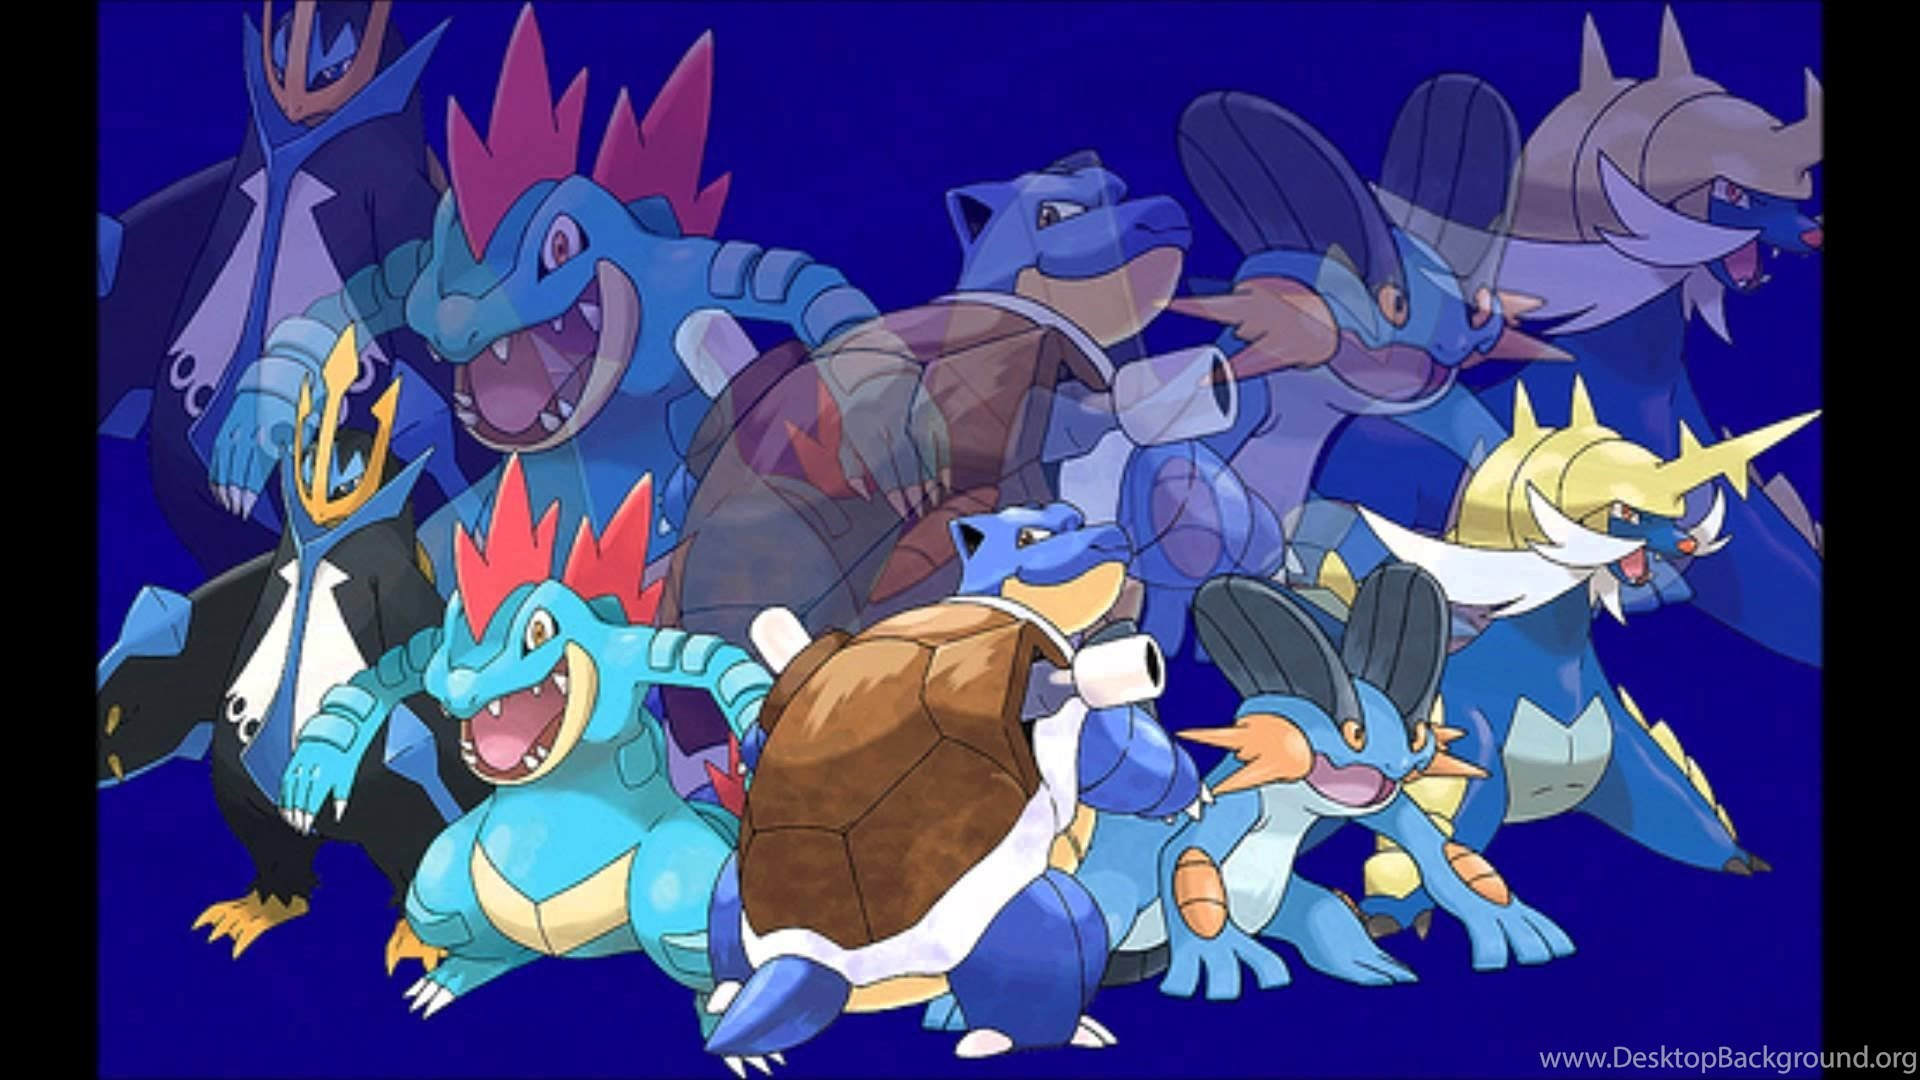 1920x1080 2500x1814 Pokémon Omega Ruby and Alpha Sapphire HD Wallpapers